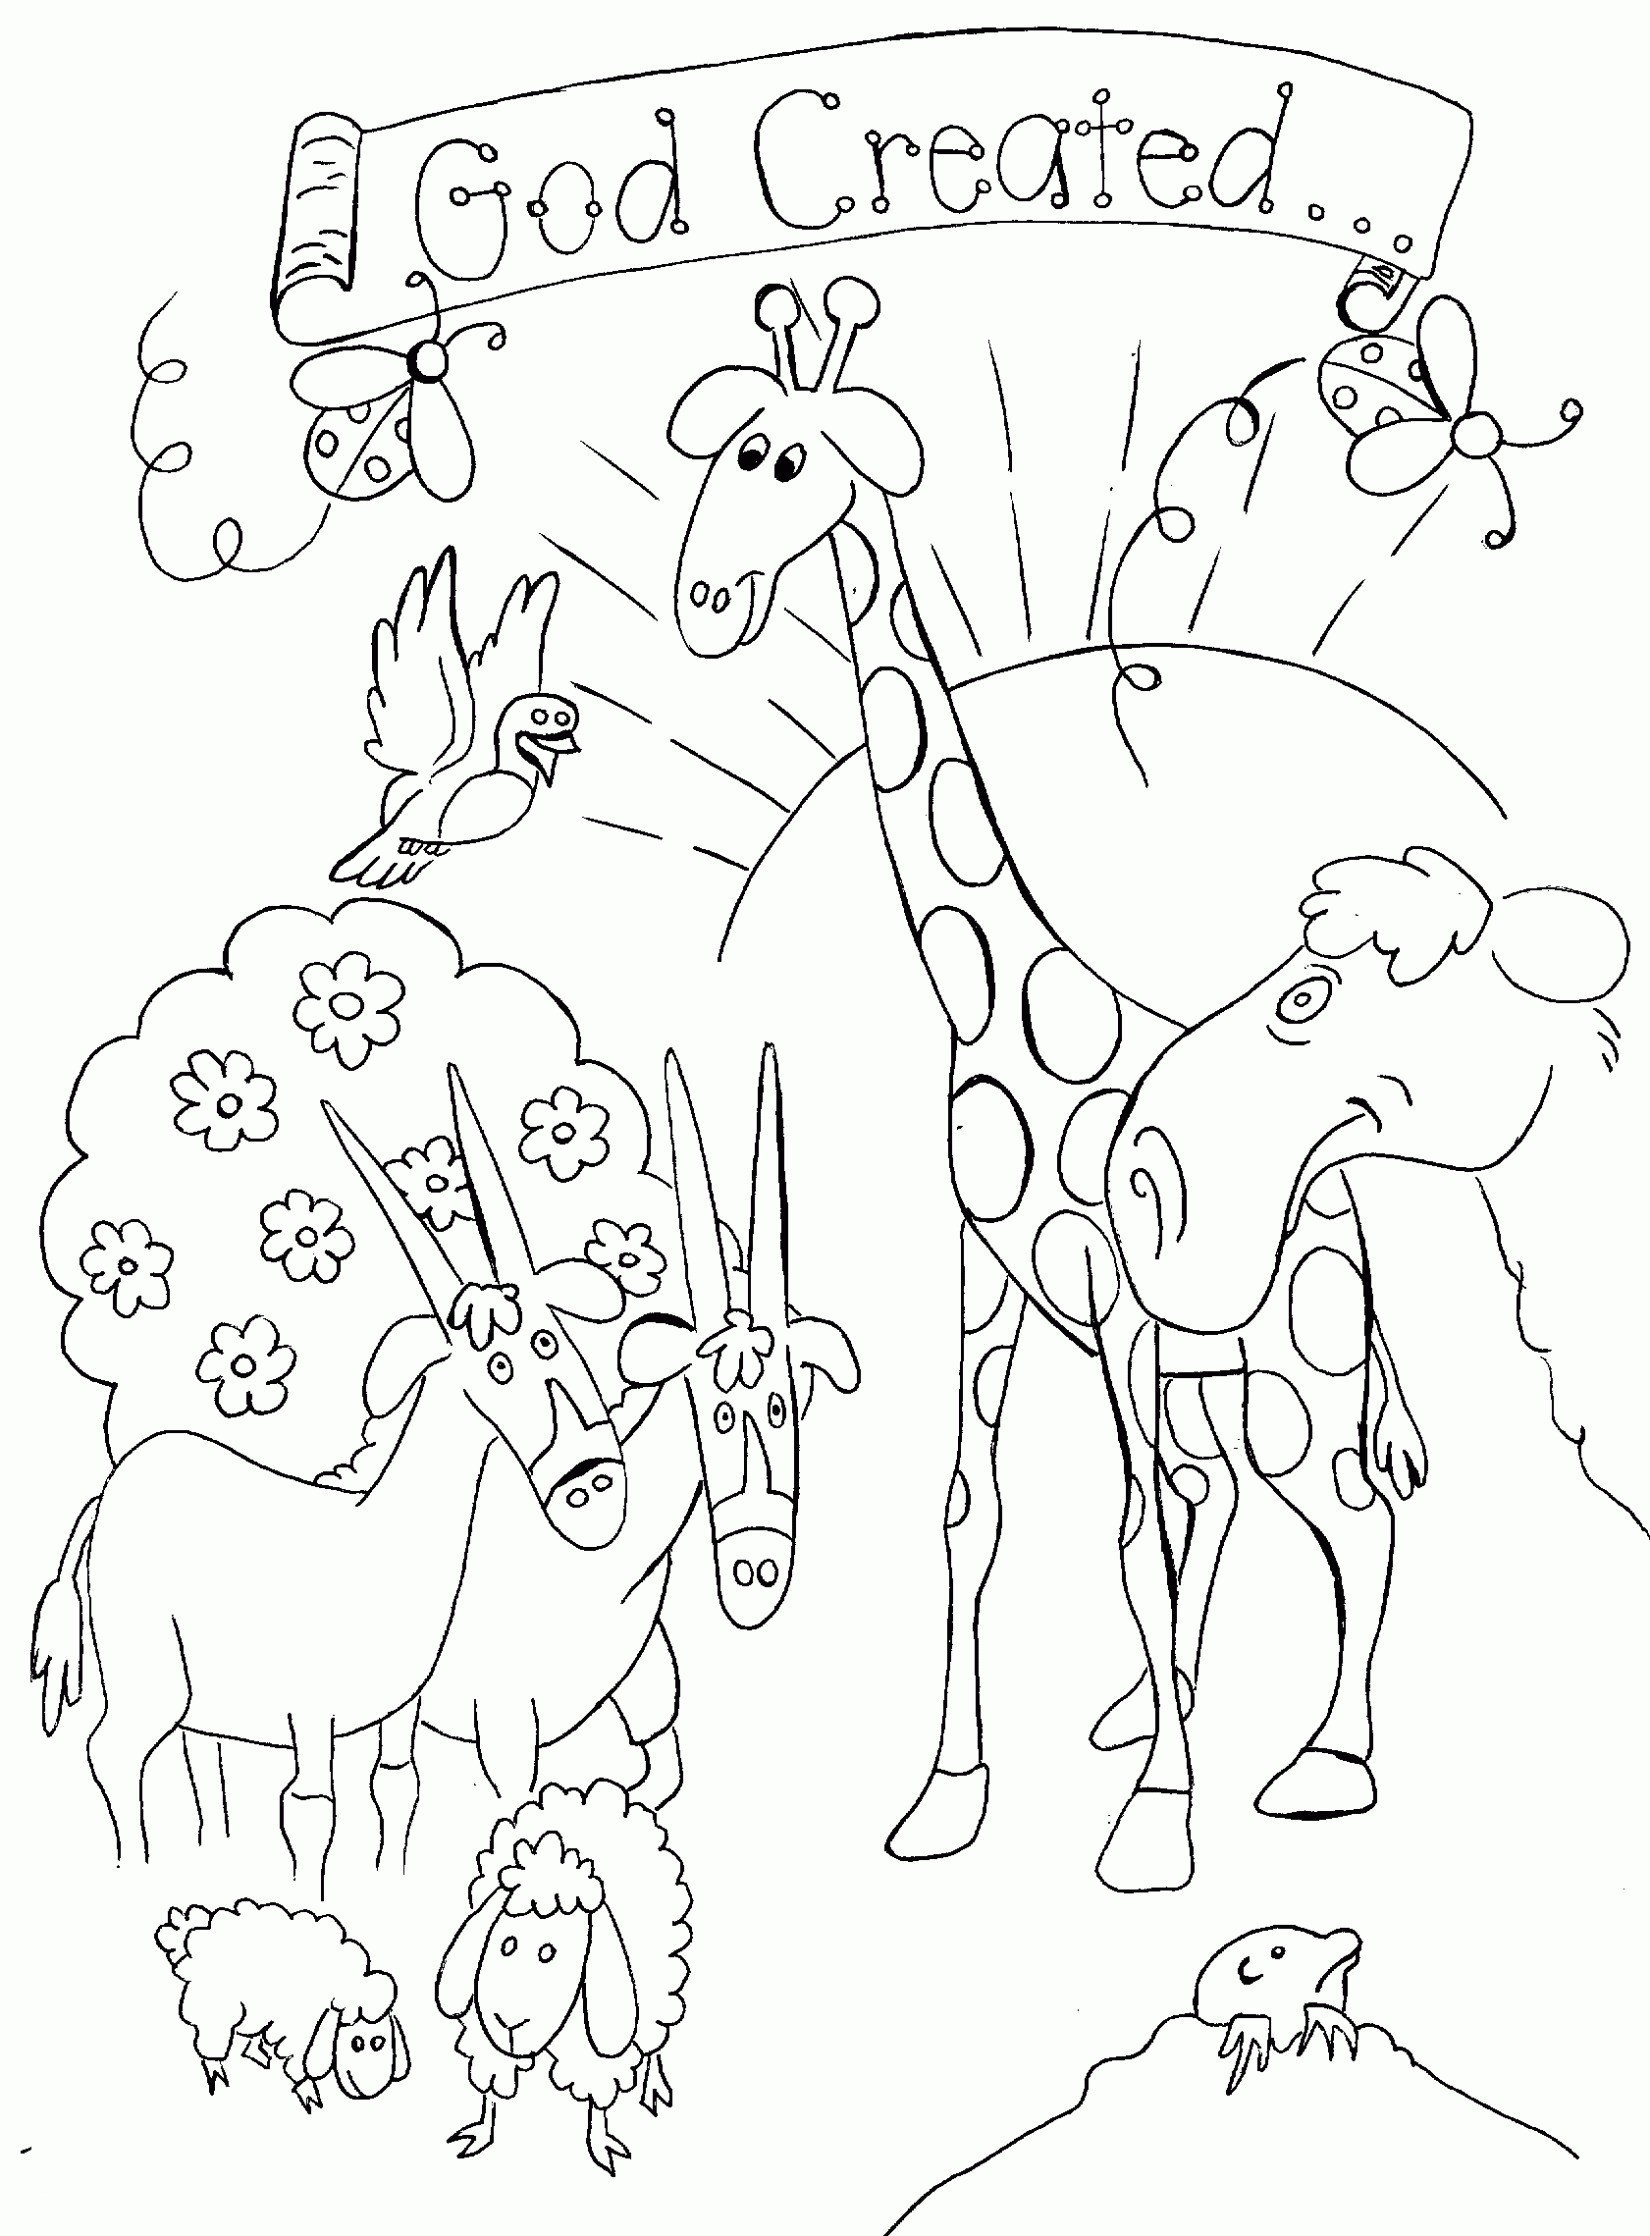 preschool bible coloring pages Collection-Bible Story Coloring Pages for Preschoolers Bible Coloring Pages Kids Valid Christian Coloring Sheets Best Bible 18-p